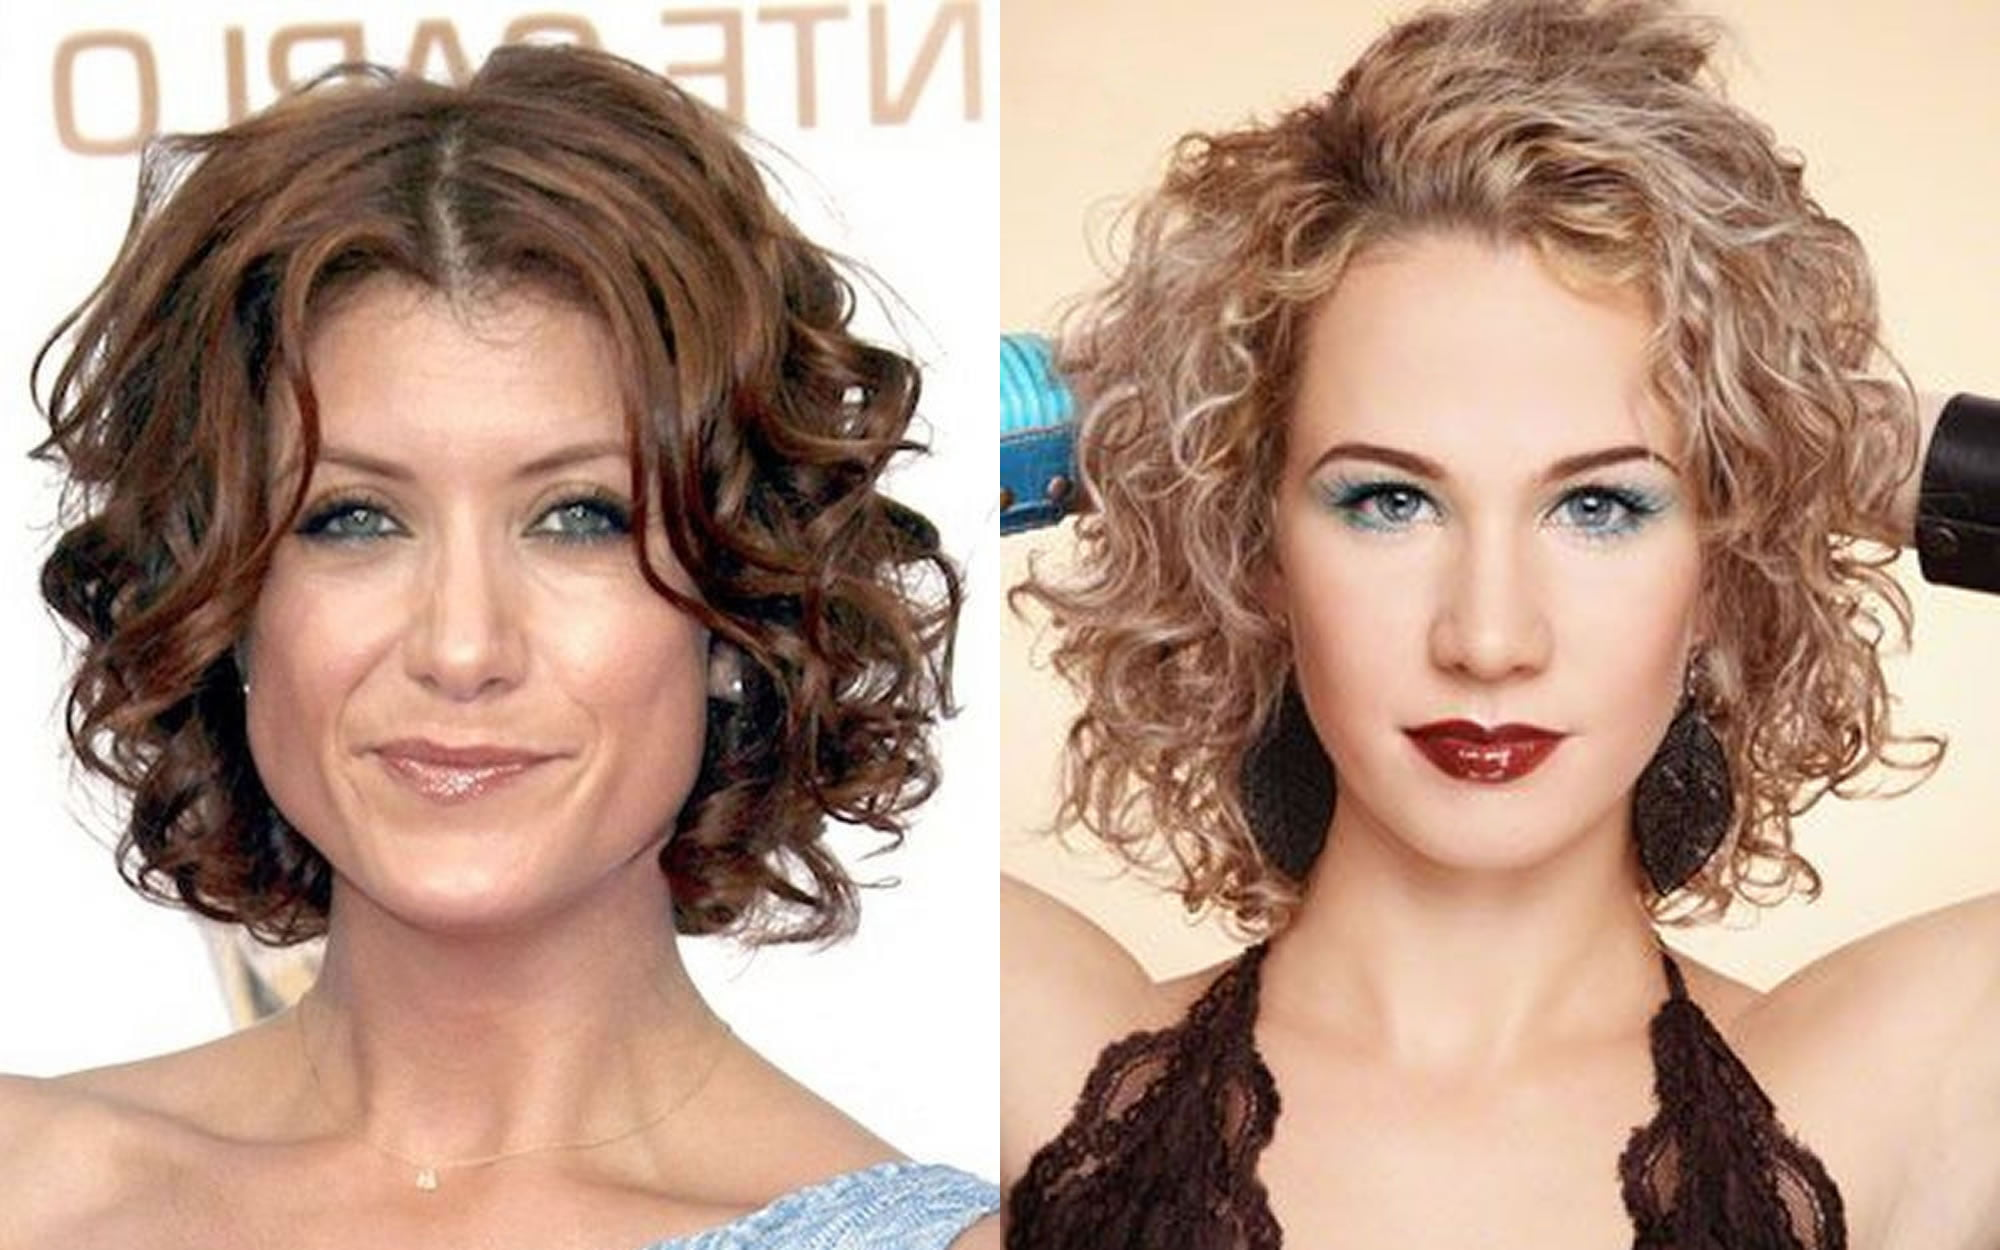 22 best curly short hairstyles for women 2018-2019